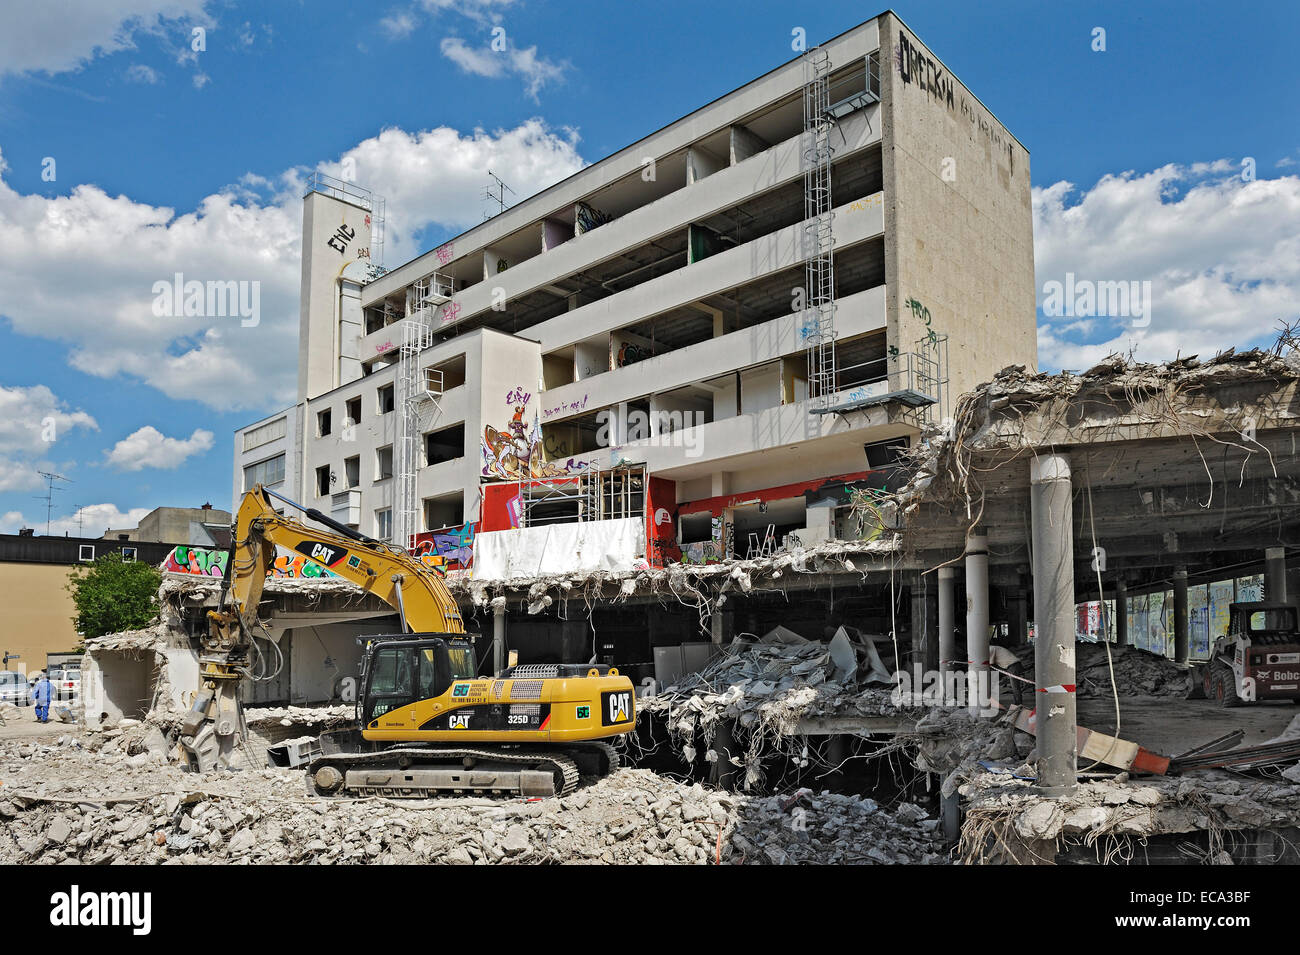 Demolition of the Hertie-Haus, Obergiesing, Munich, Upper Bavaria, Bavaria, Germany - Stock Image